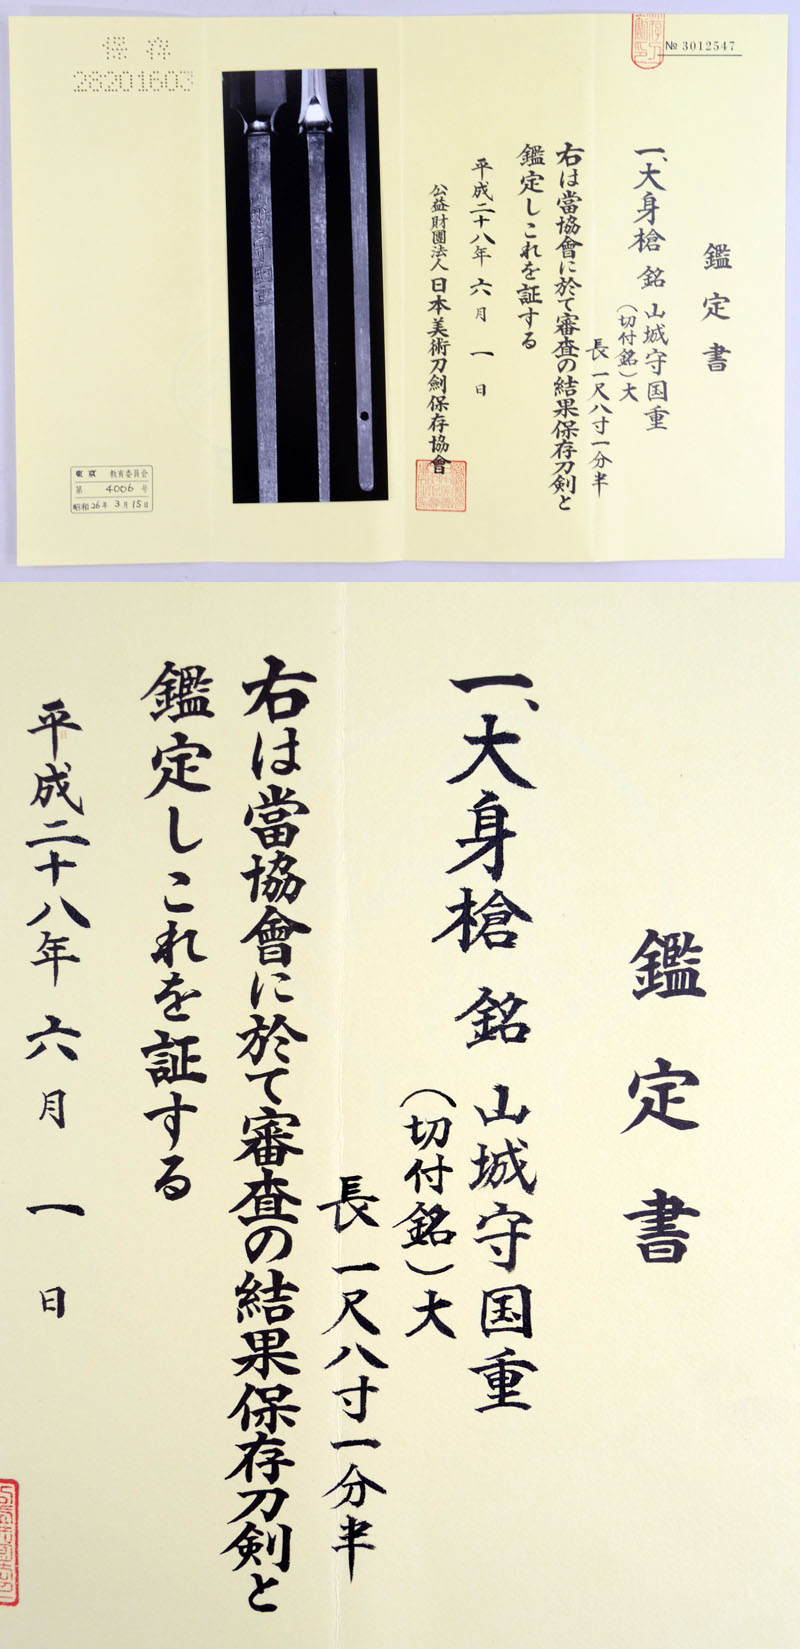 山城守国重 Picture of Certificate